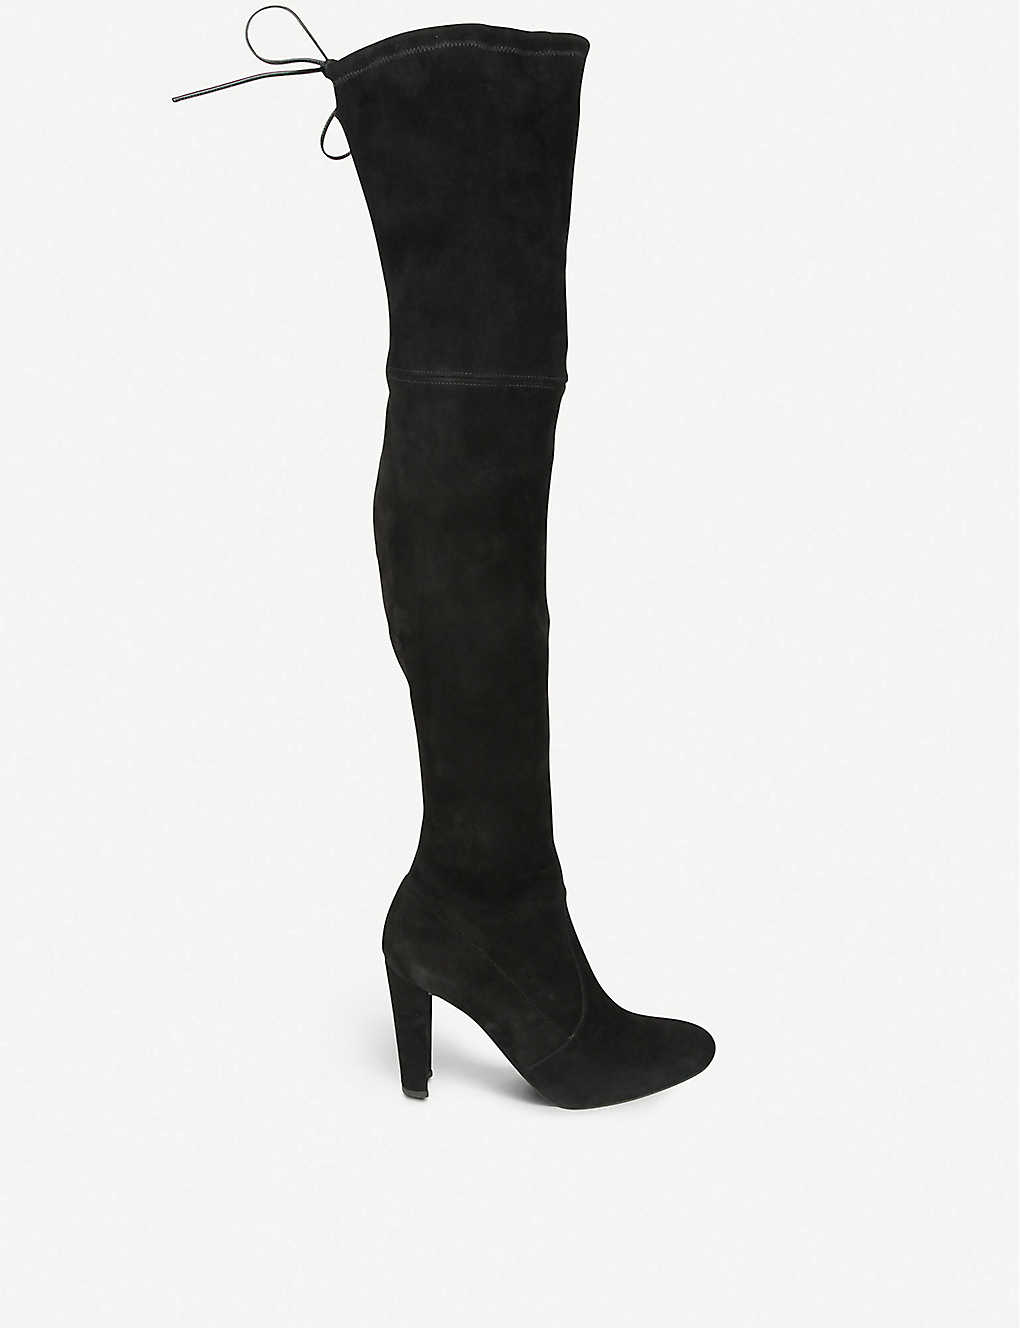 81fe245e570 STUART WEITZMAN - Highland suede over-the-knee boots